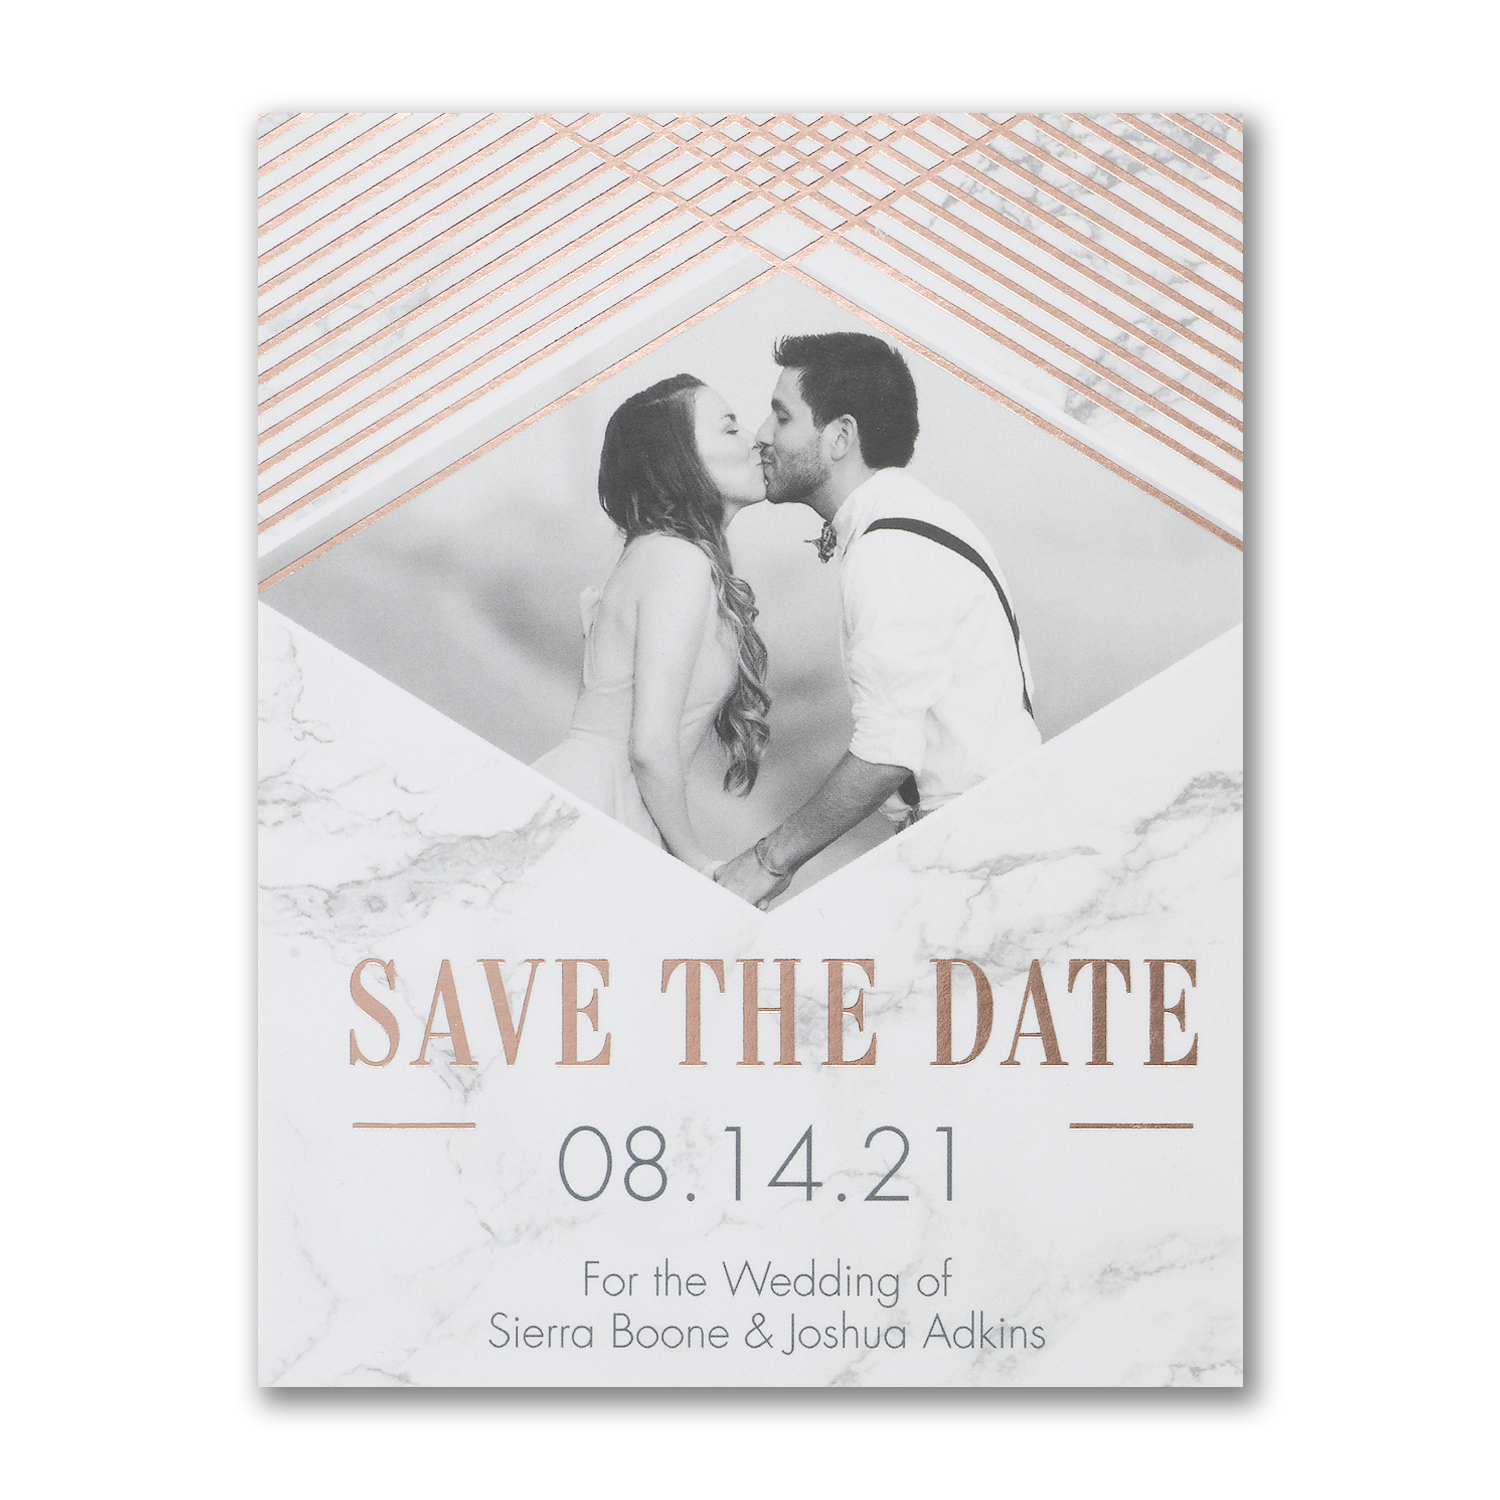 marble geometric photo foil save the date postcard